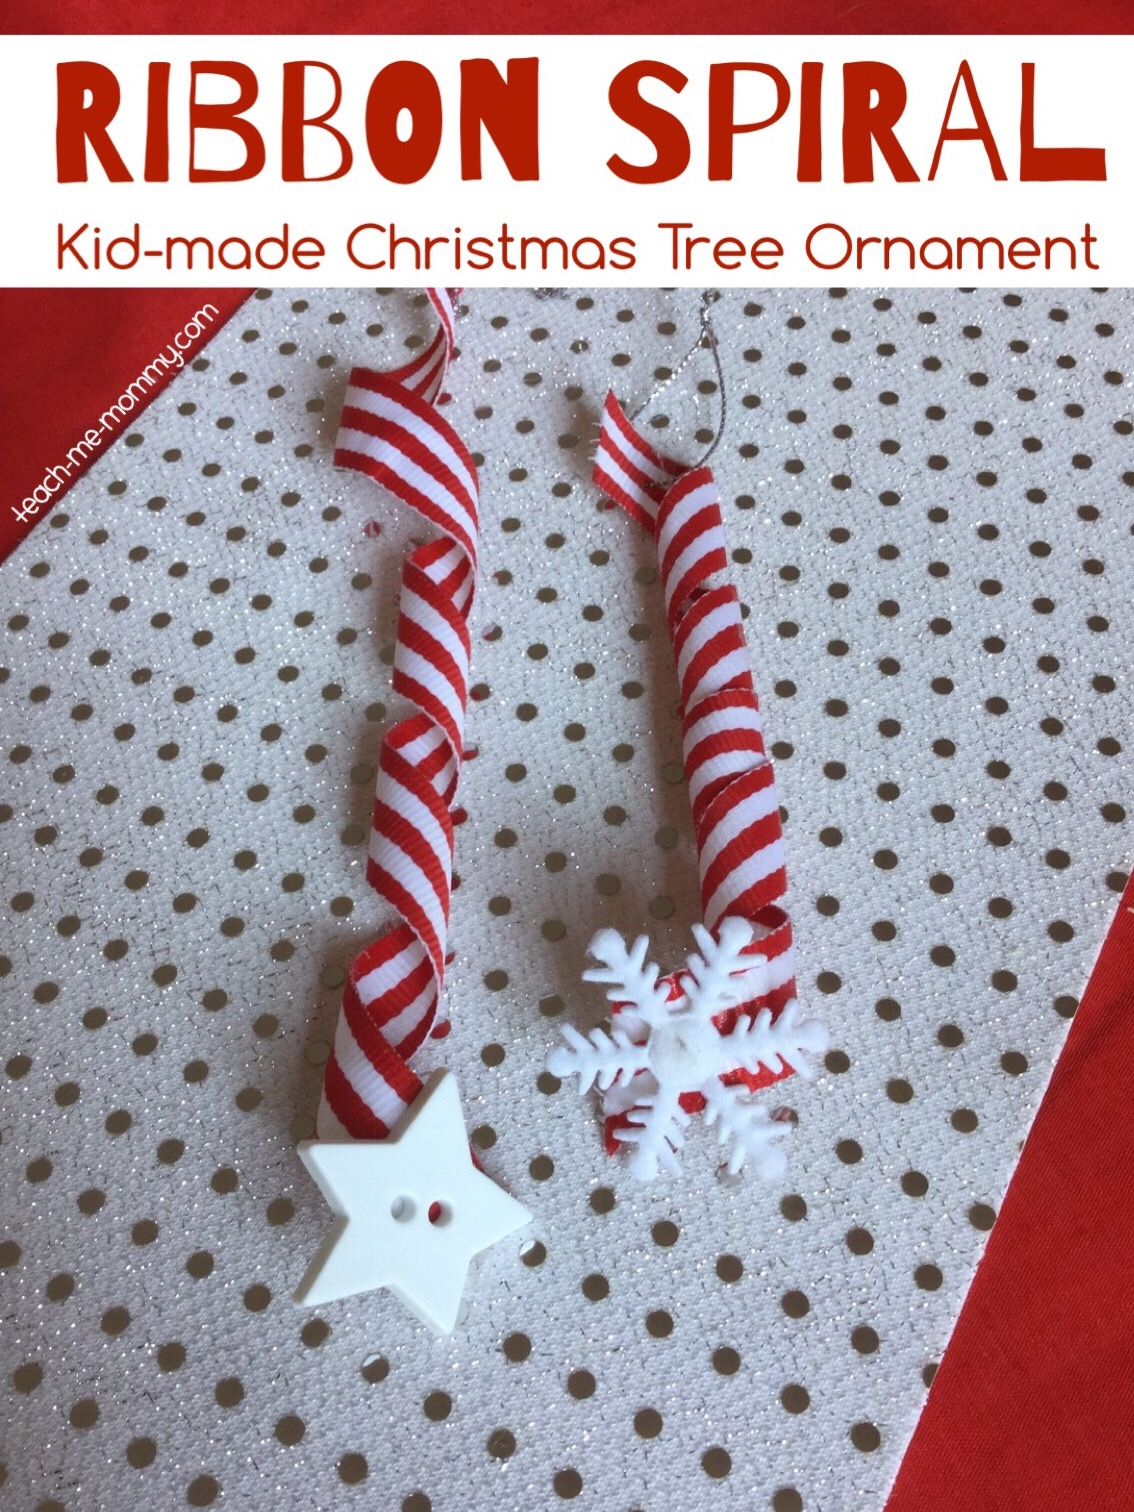 ribbon spiral ornament